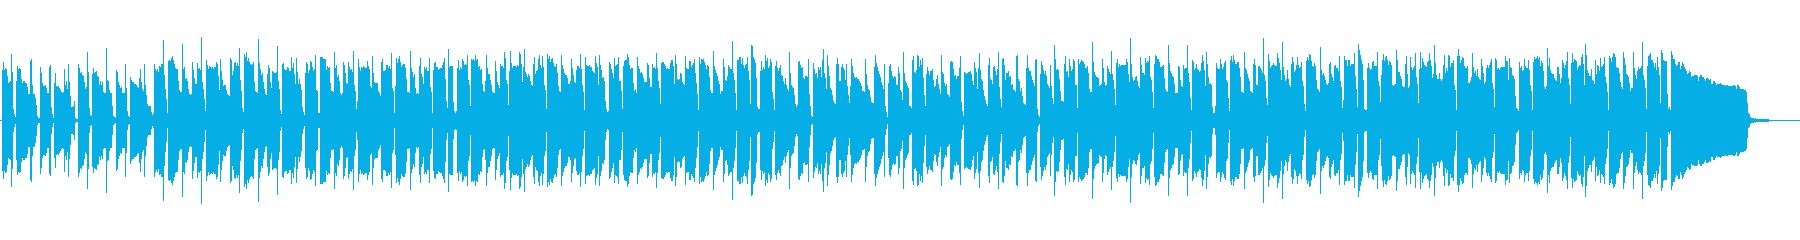 [Without guitar] Summer relaxing on the beach in Hawaii's reproduced waveform